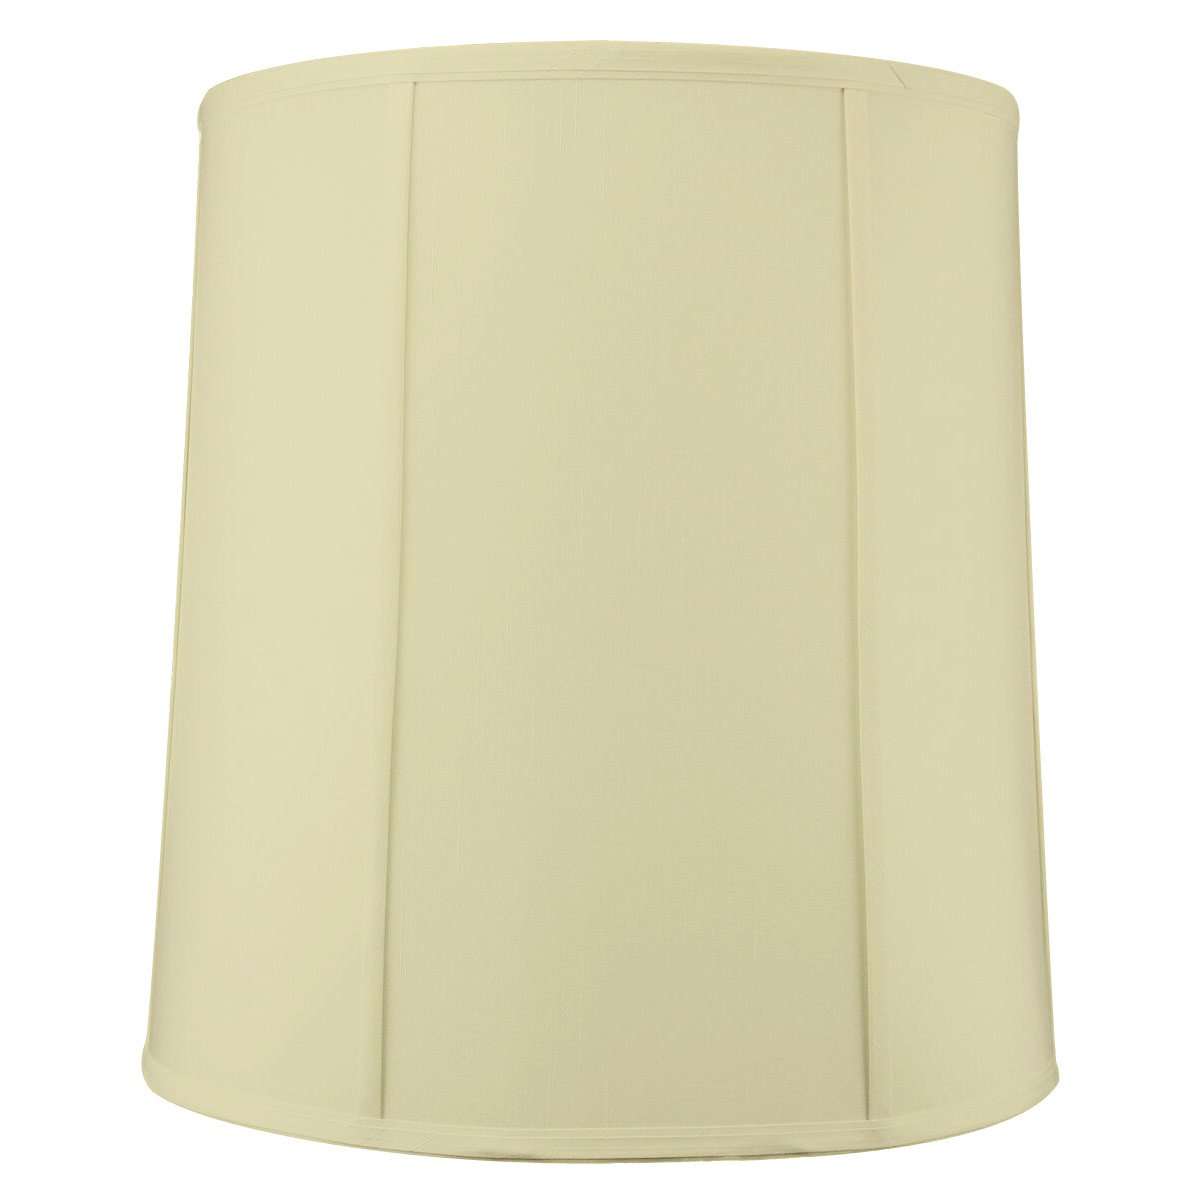 "14""x16""x17"" Tall Drum Lampshade Egg Shell Shantung, Cylinder Replacement Large Lamp Shade by Home Concept for Table Lamps"